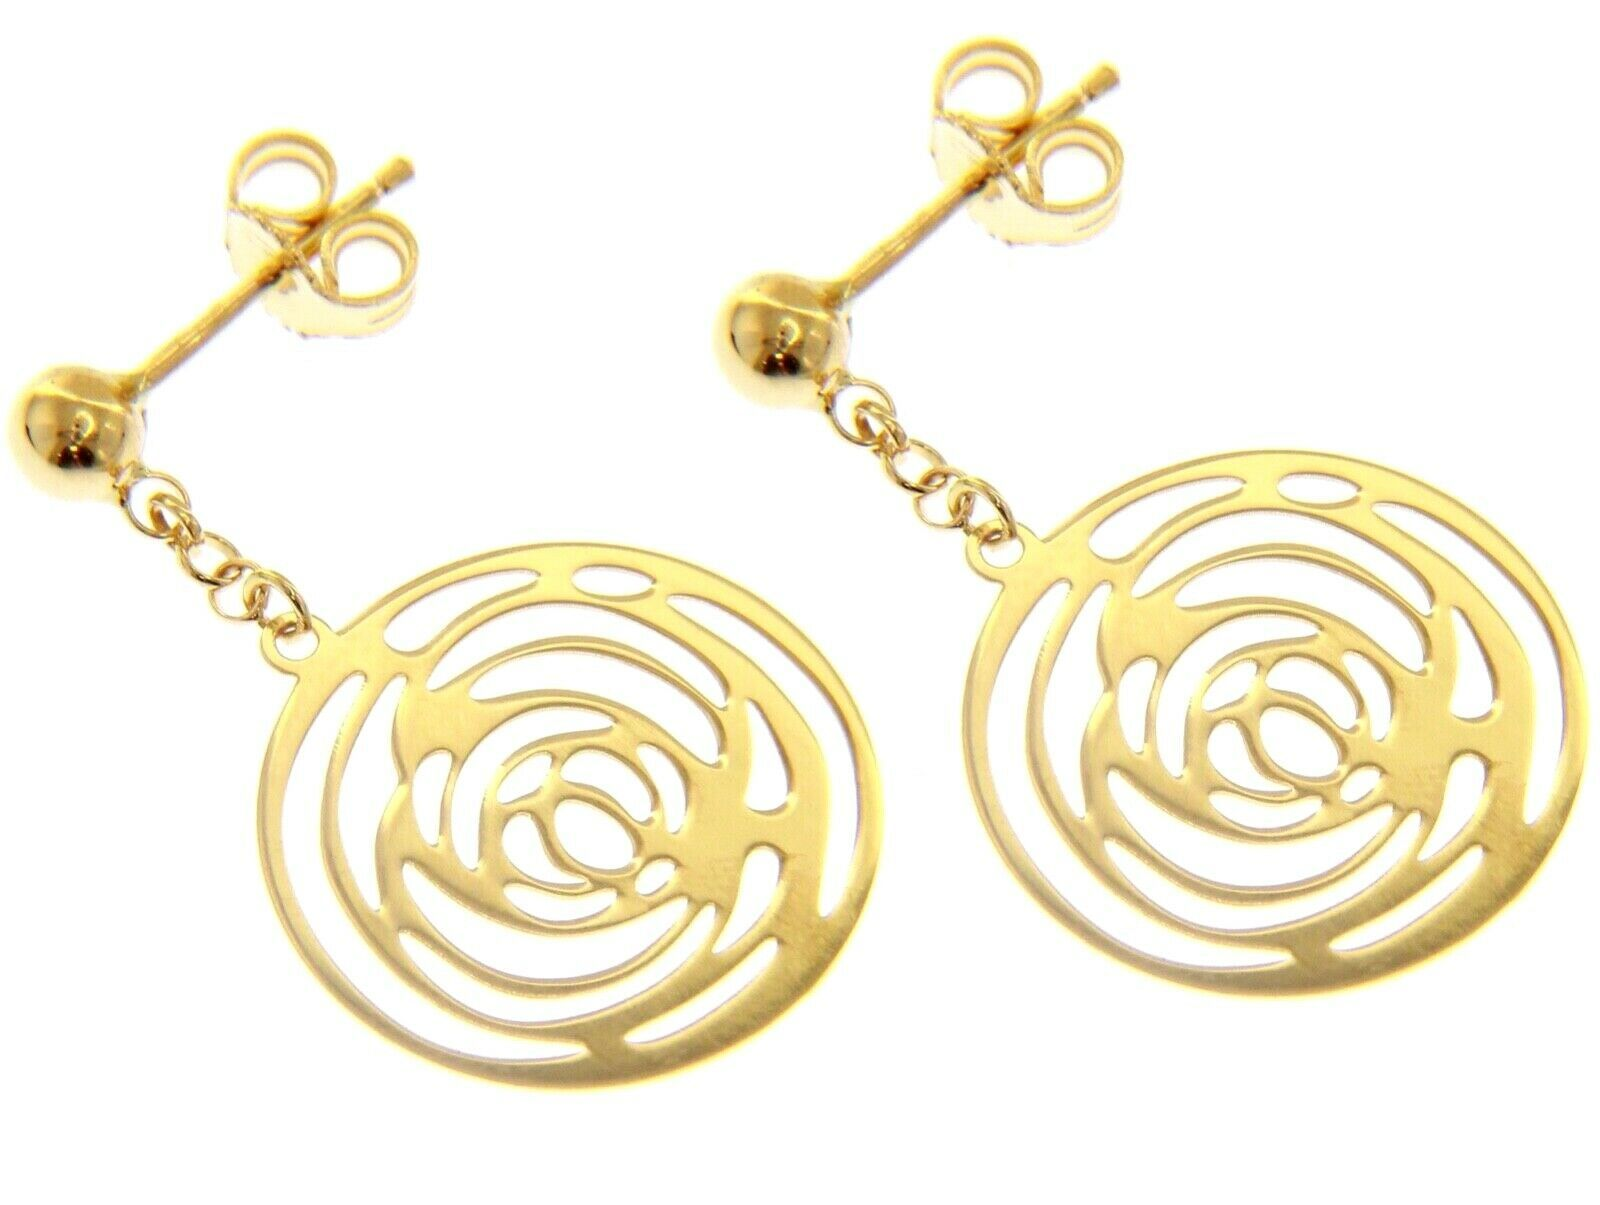 18K YELLOW GOLD PENDANT EARRINGS, FLOWER ROSE WORKED DISC, MADE IN ITALY